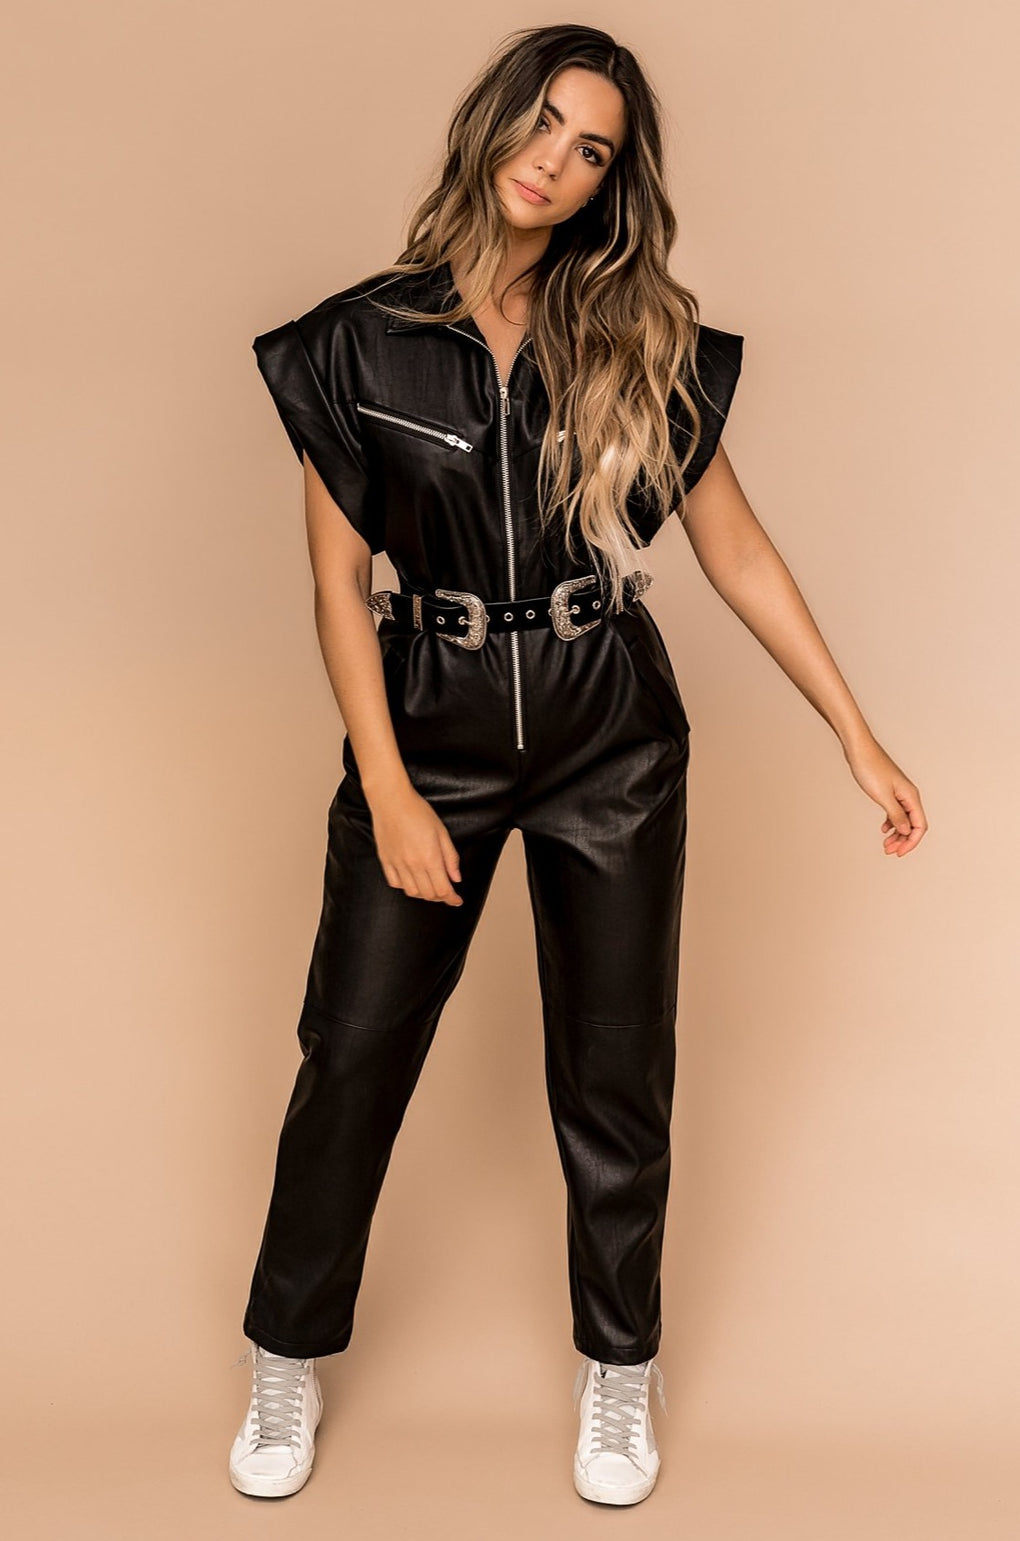 Santa Fe Vegan Leather Luxe Jumpsuit in Black